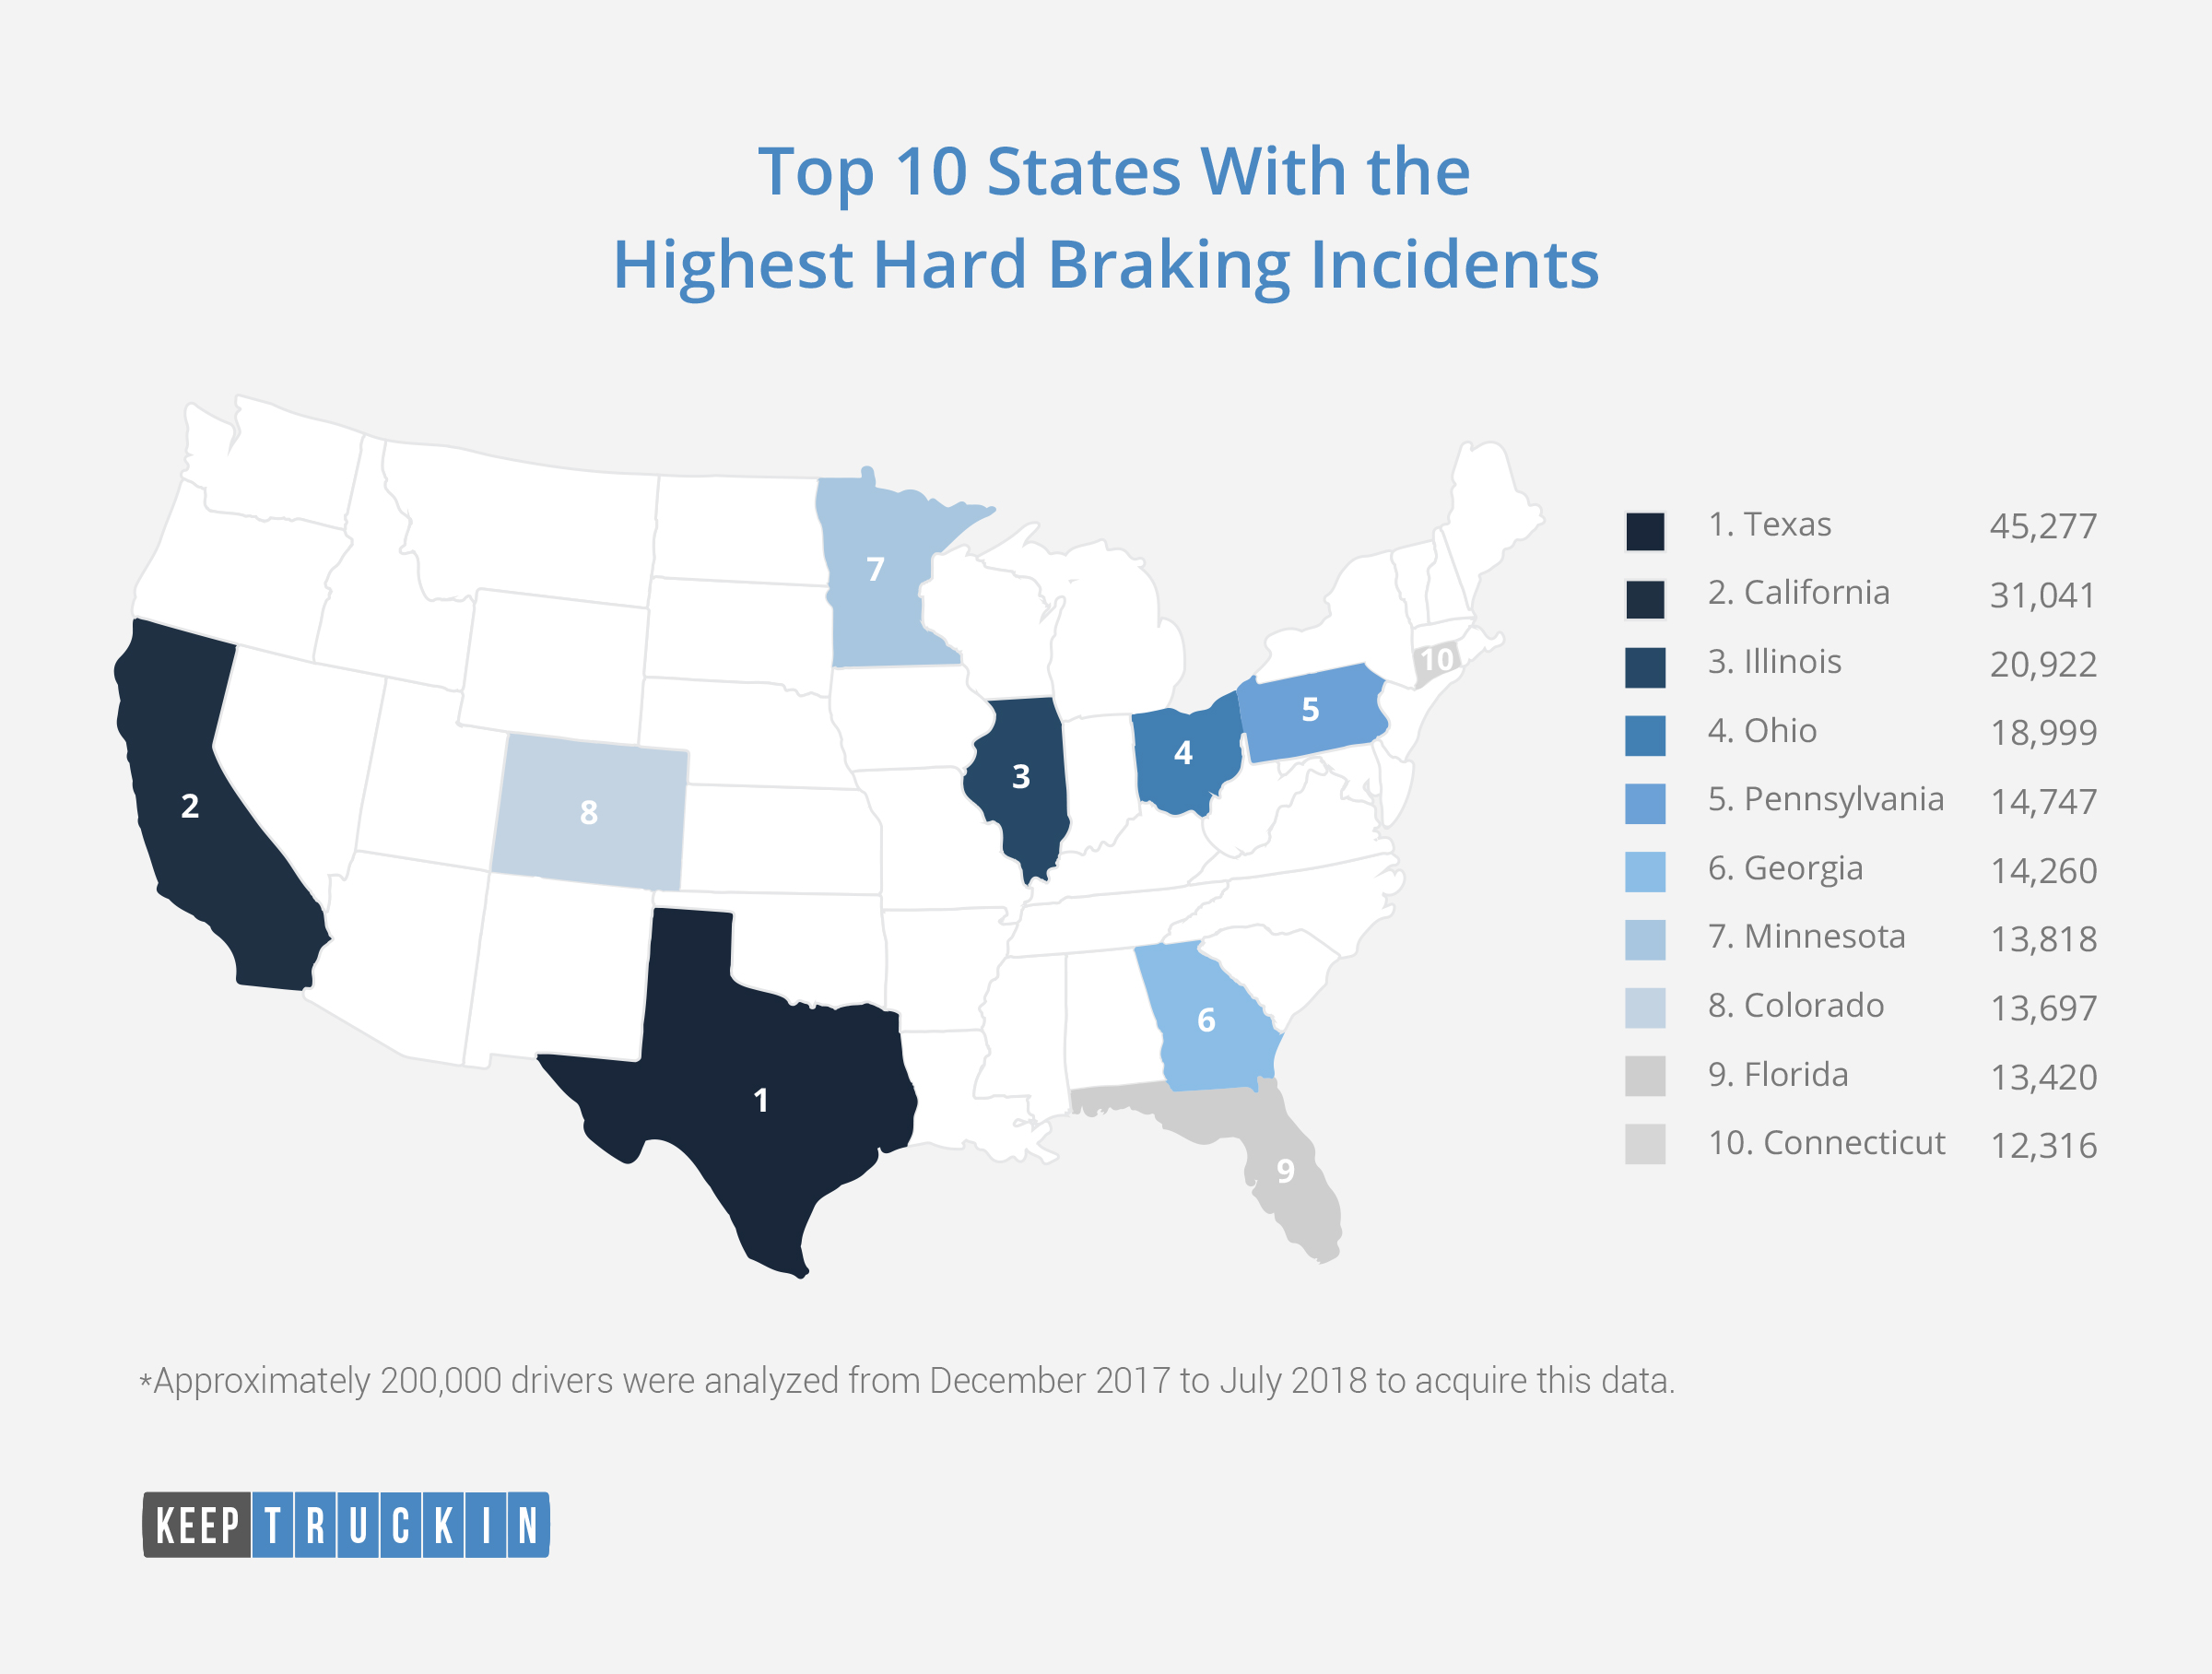 Top 10 states with the highest hard braking incidents